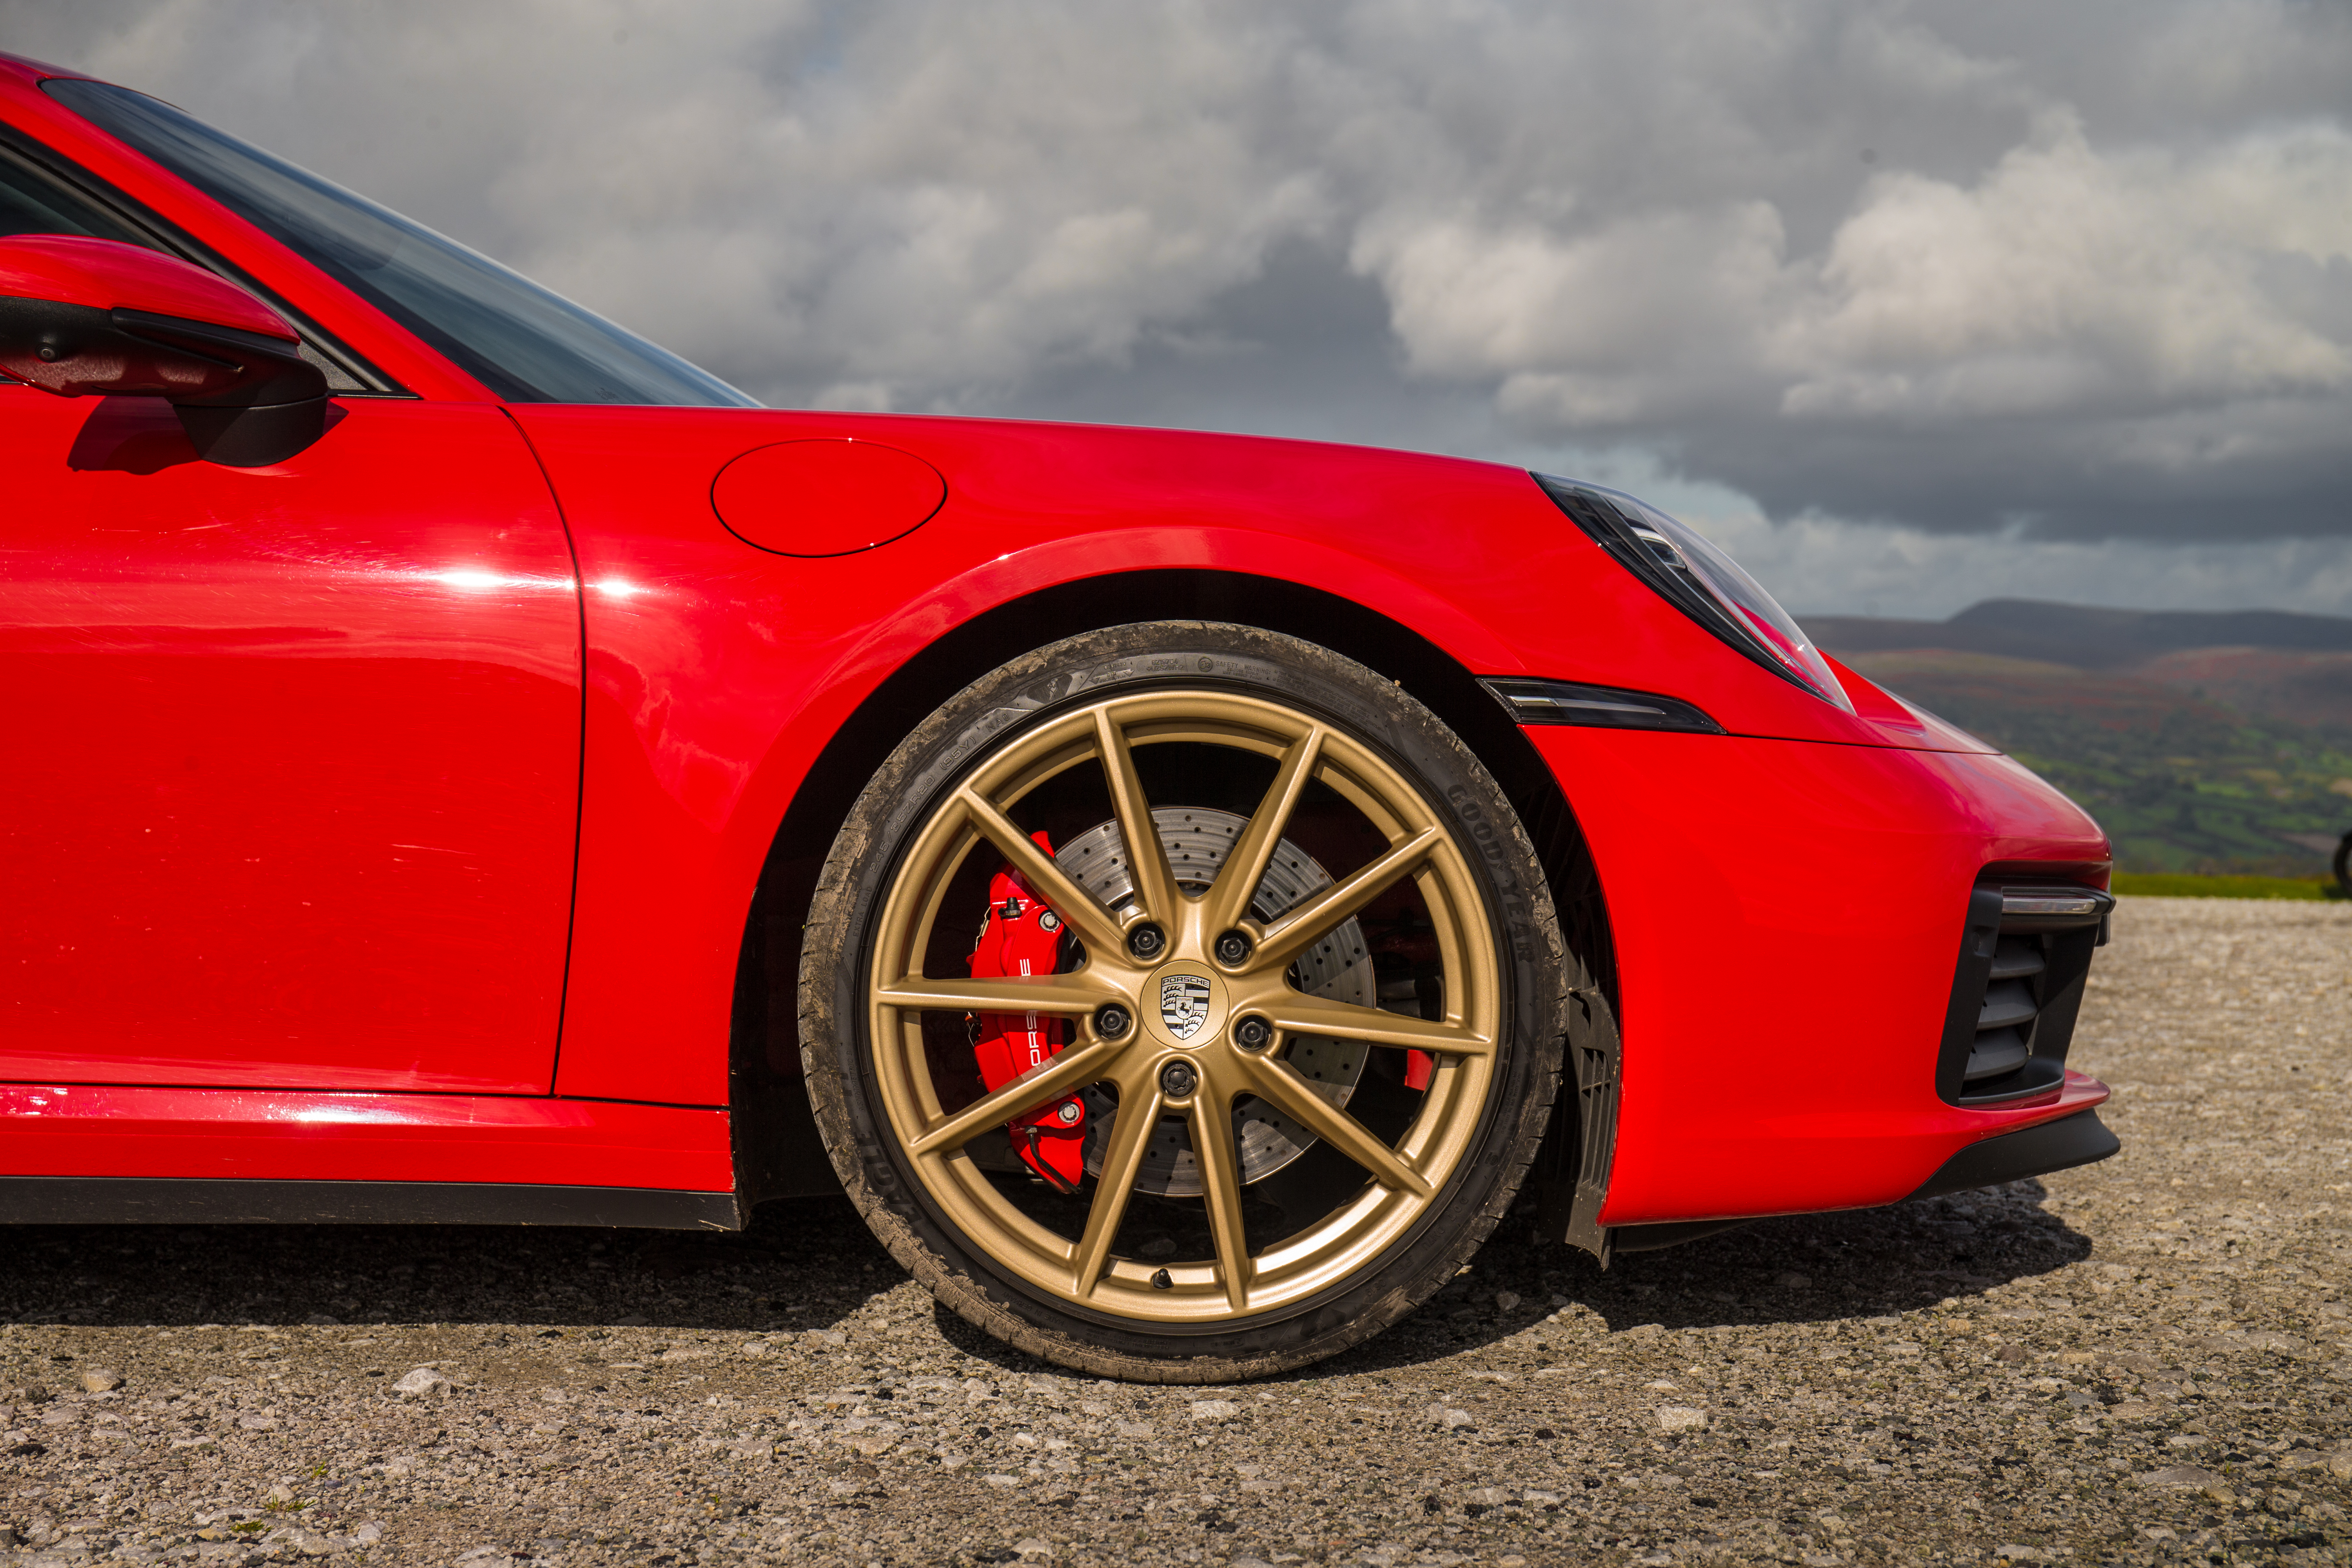 Bronze alloys help the car to stand out